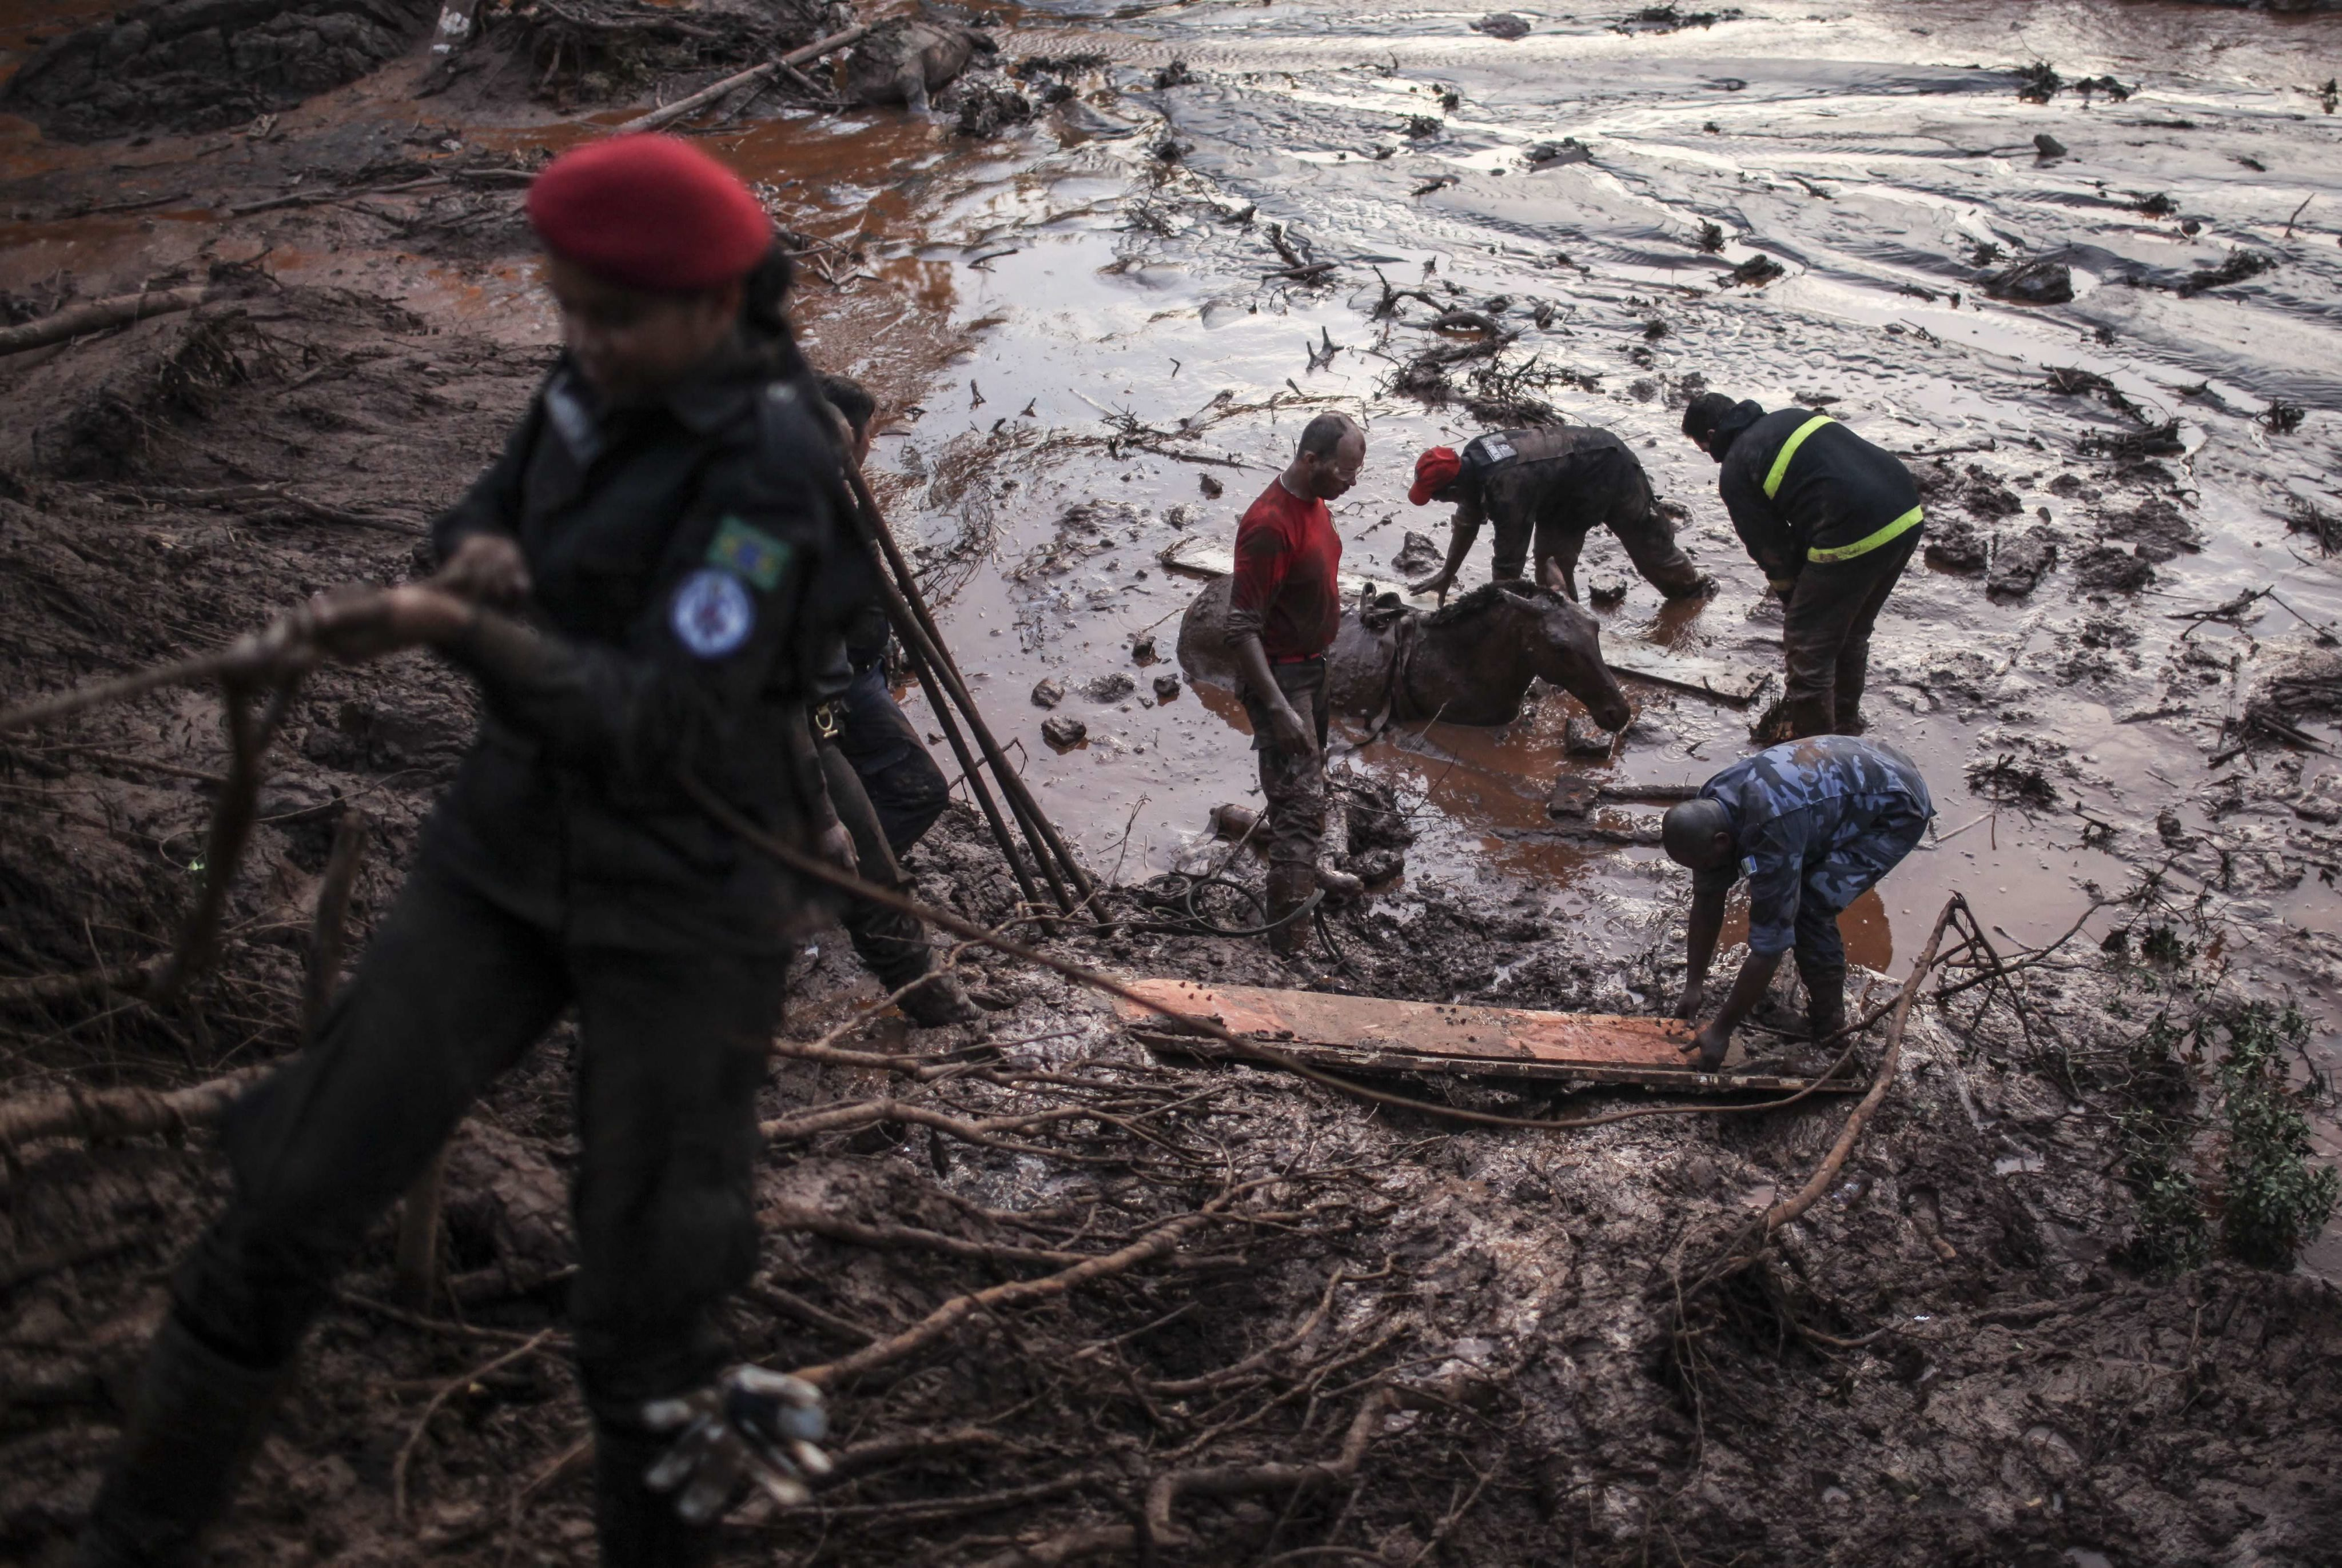 Firefighters try to save a horse that is stuck in the mud after a barrier at an industrial waste site collapsed in Mariana, Brazil on Nov. 6, 2015.